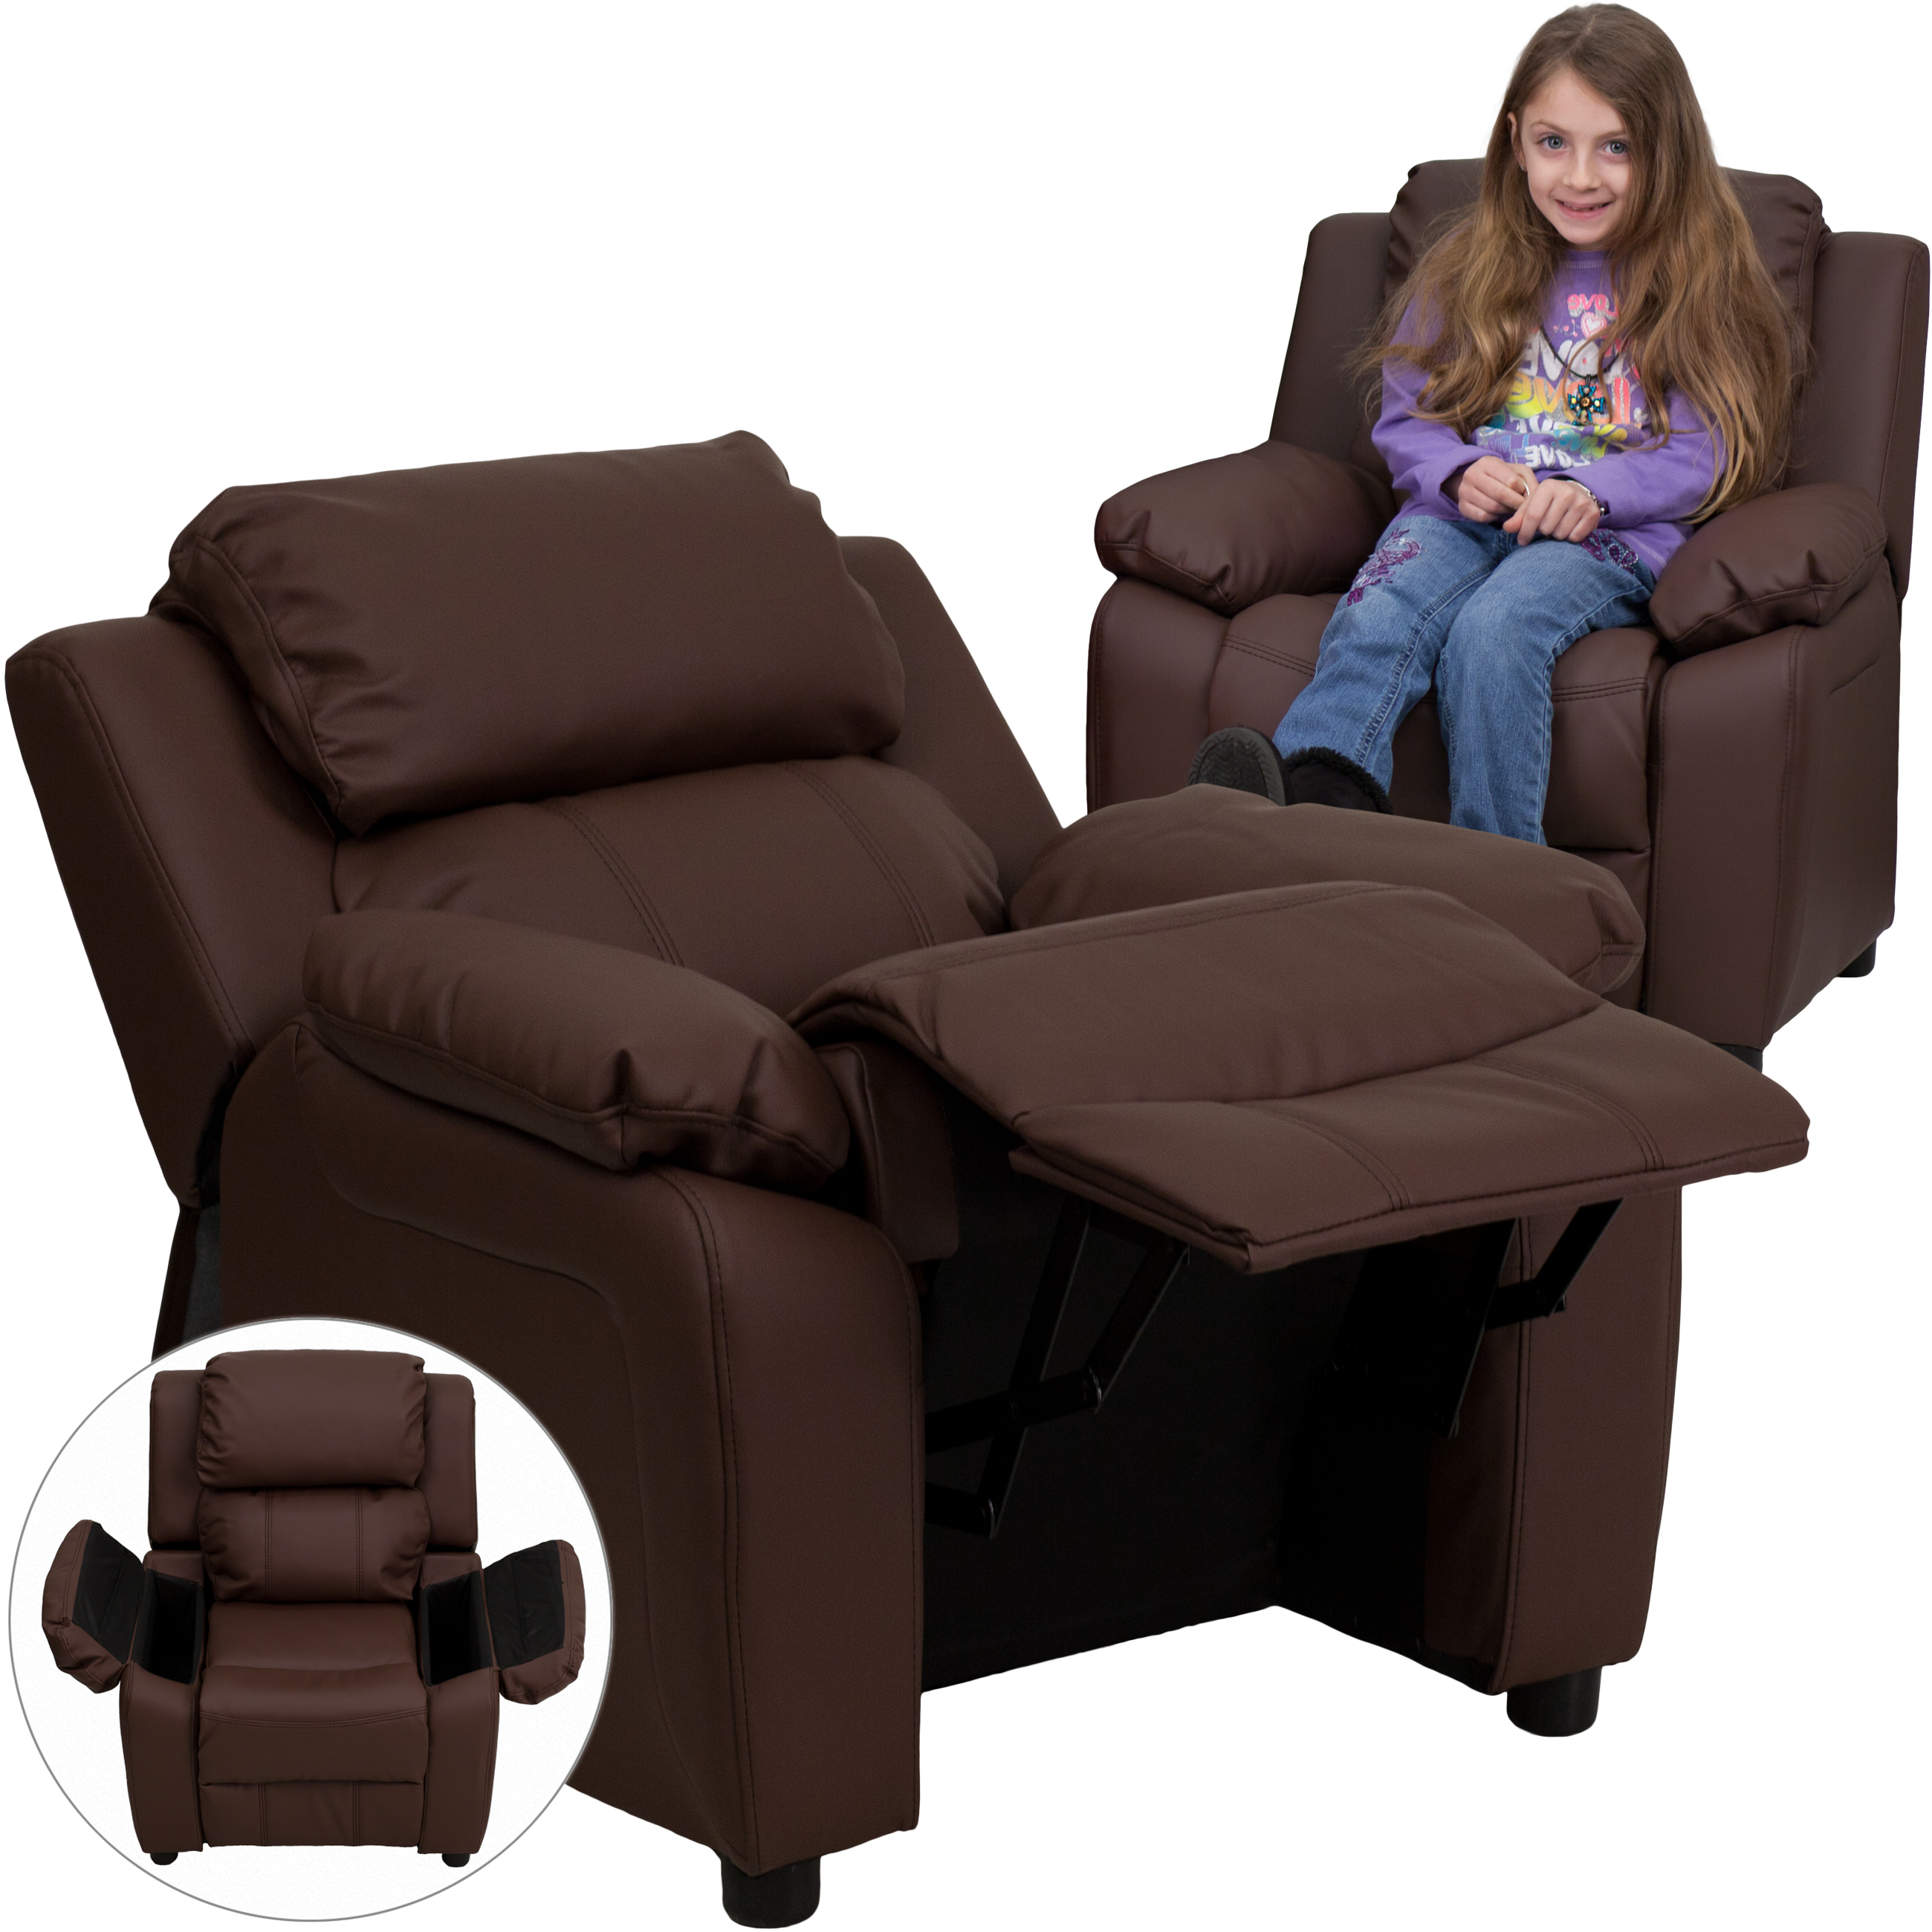 Deluxe Padded Contemporary Brown Leather Kids Recliner with Storage Arms  sc 1 st  Walmart & Kidsu0027 Recliners islam-shia.org